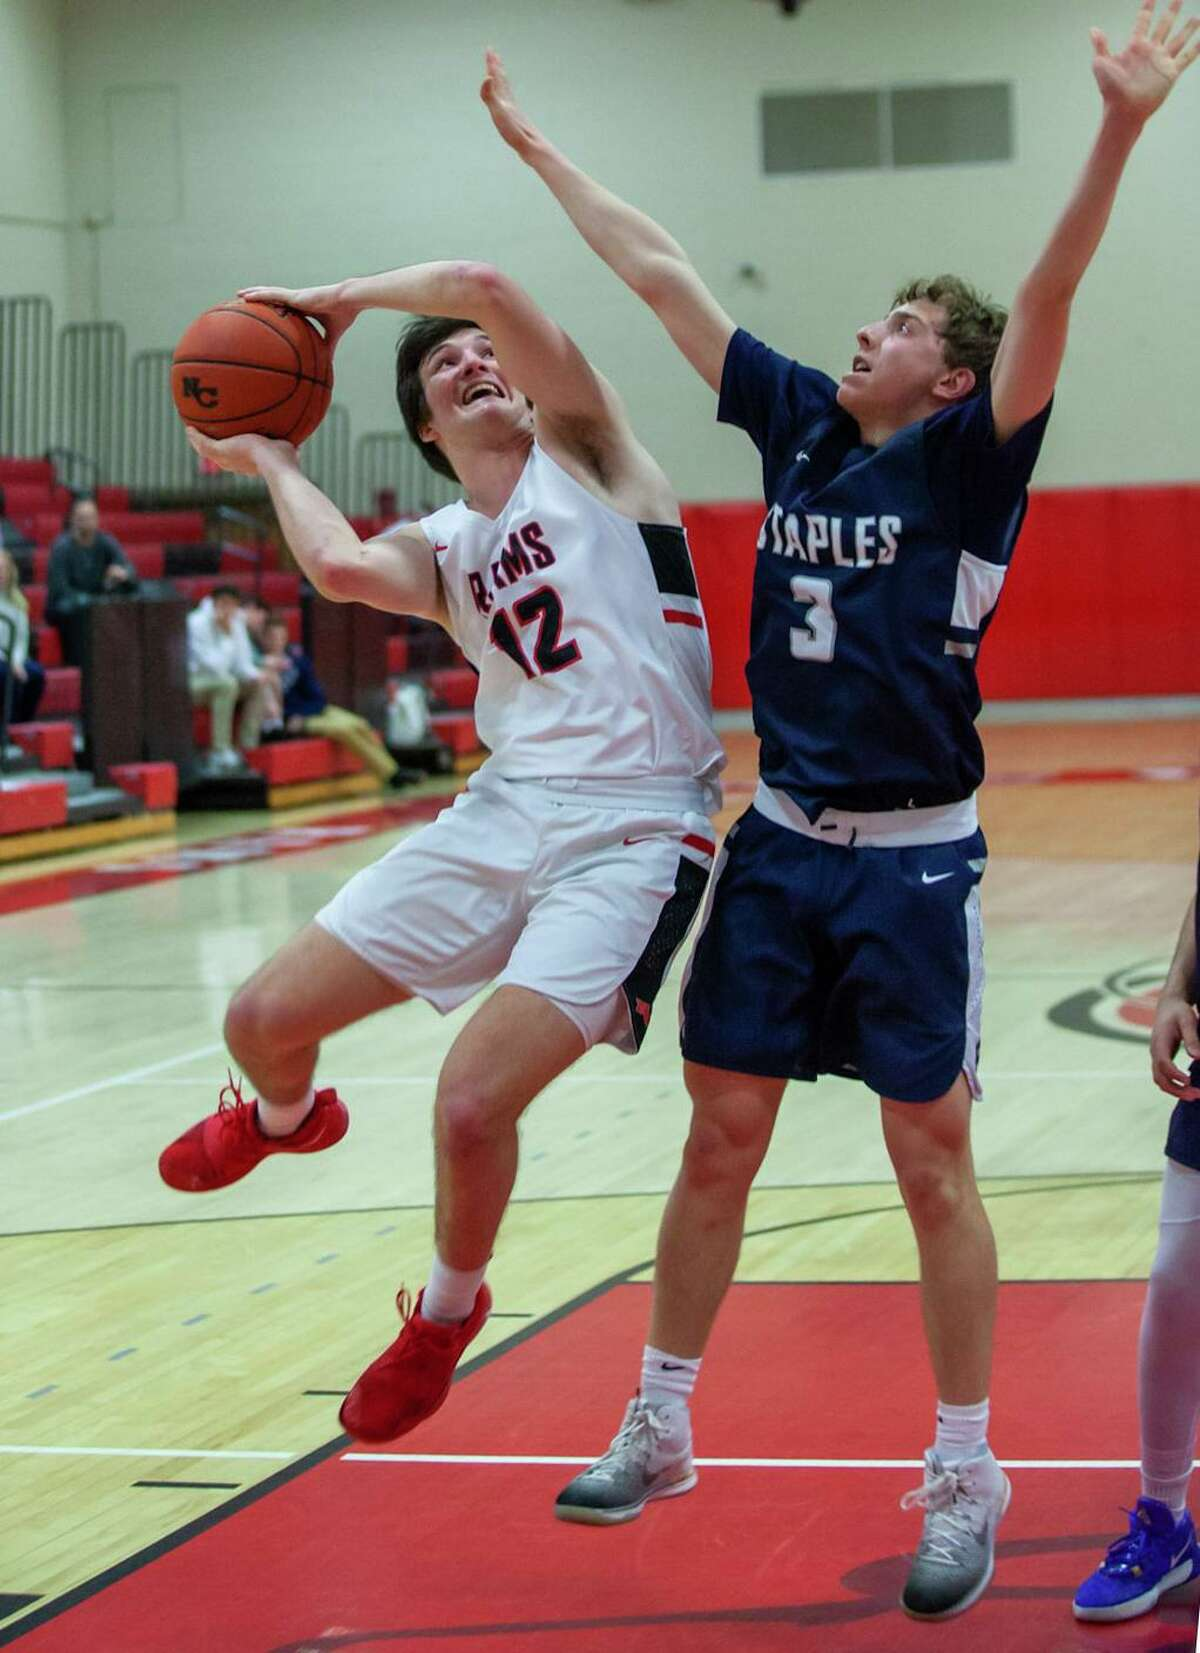 New Canaan's Christian Sweeney (12) goes up for a shot, while Staples' Derek Sale (3) defends during a boys basketball game at New Canaan High School on Monday, Feb. 24, 2020.